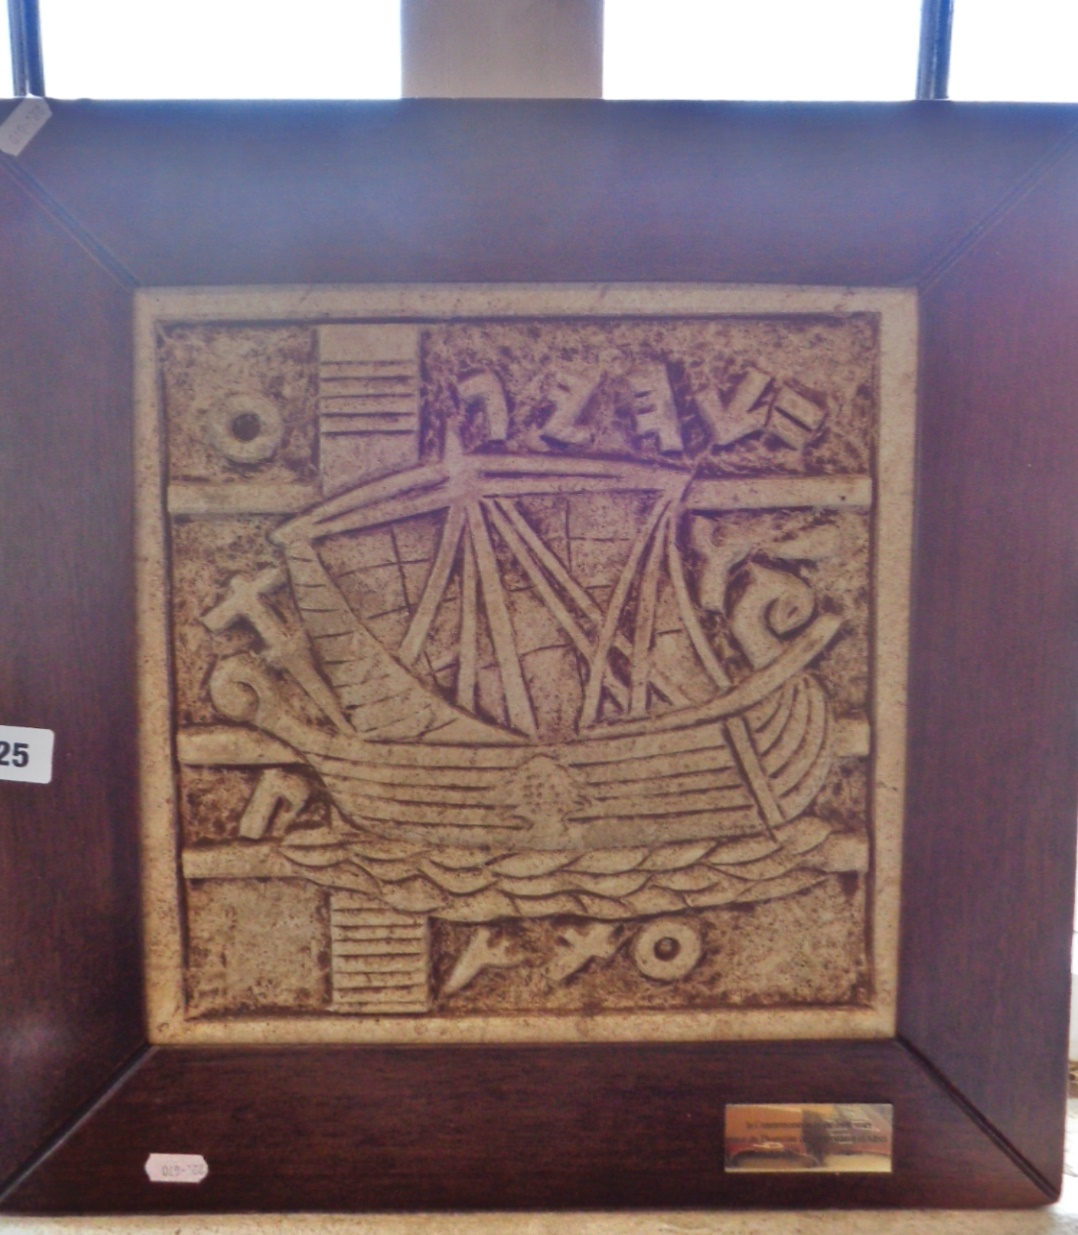 Lot 25 - Wood framed ceramic relief plaque of a Phoenician sailing vessel commemorating the